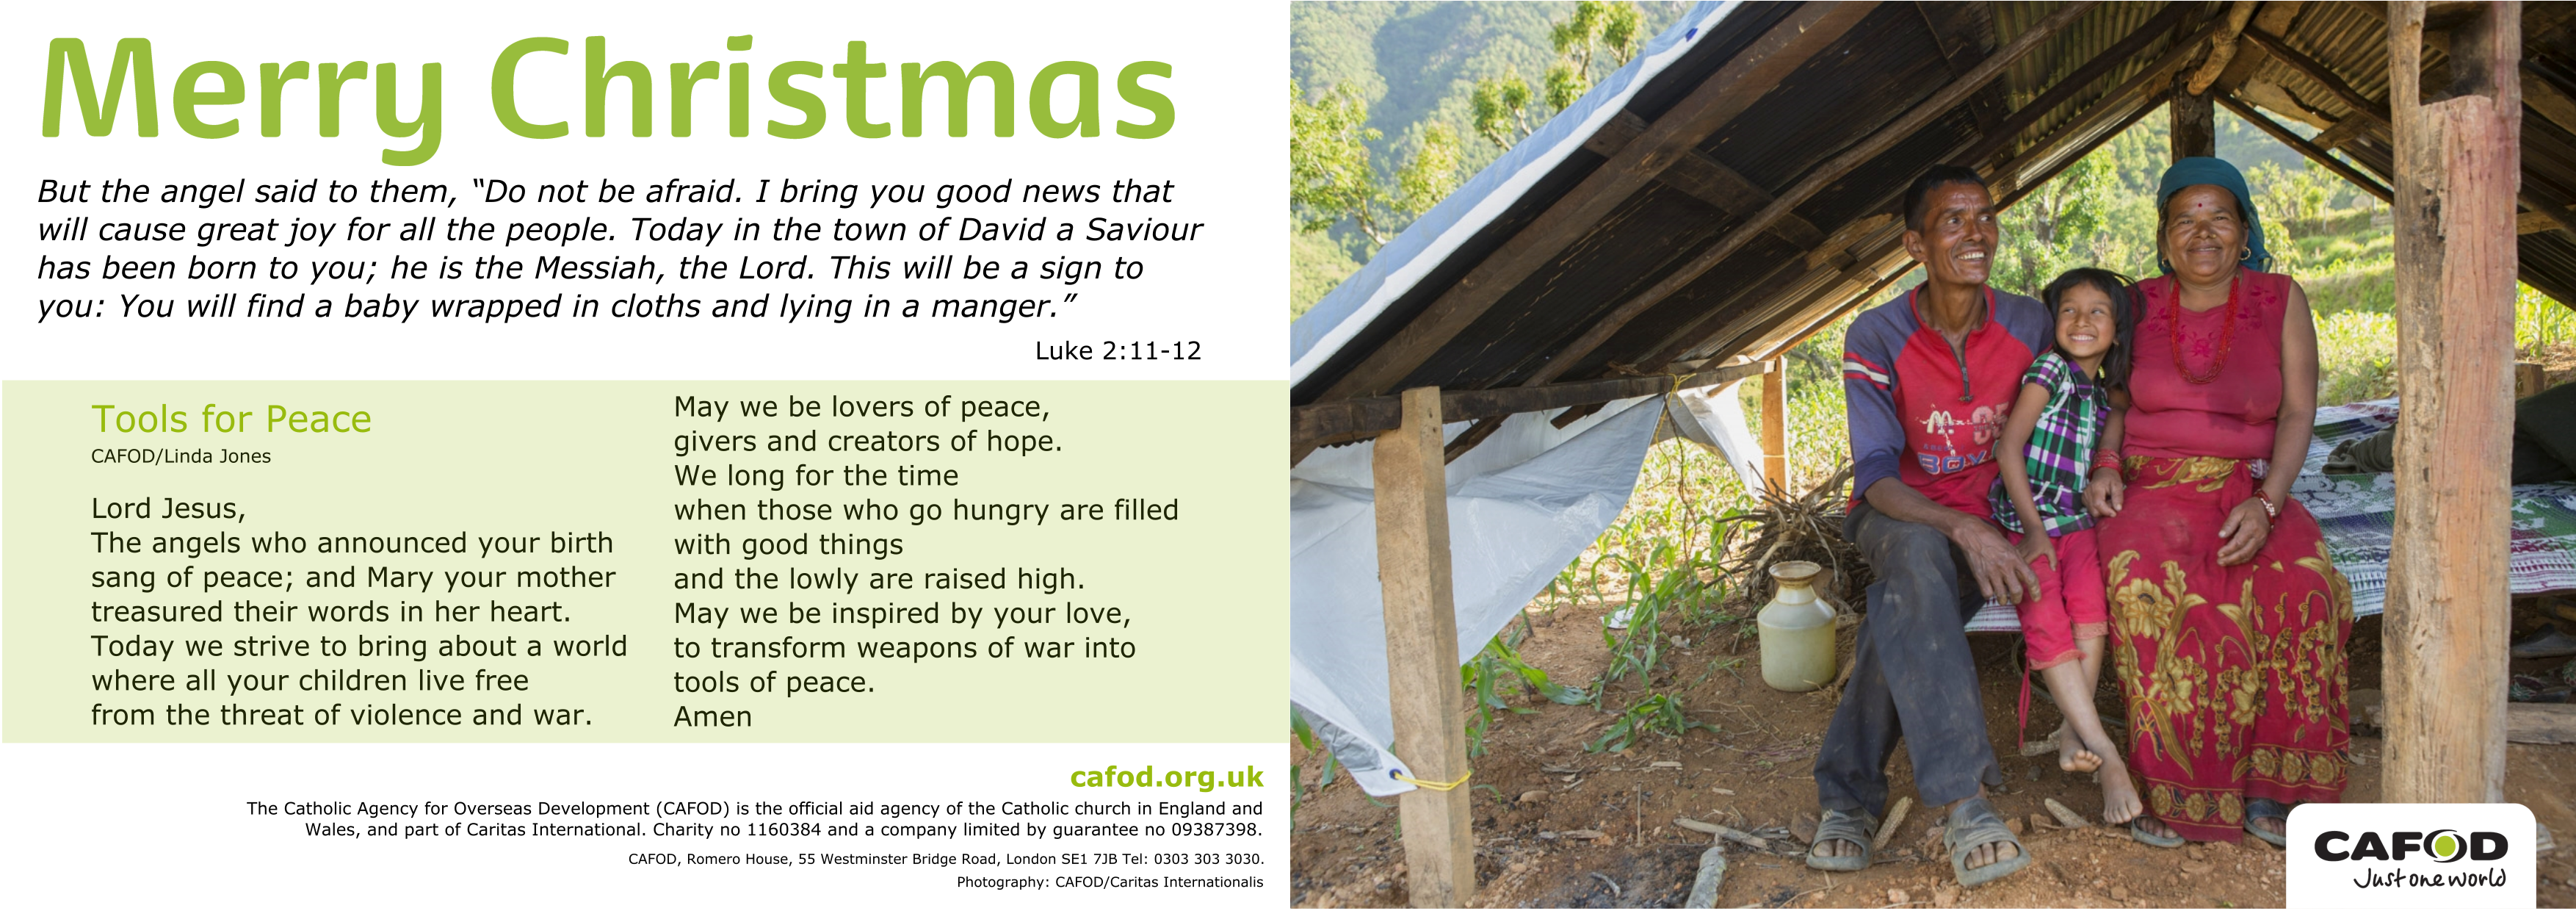 Merry Christmas From Cafod Southwark Volunteer Centre Cafod